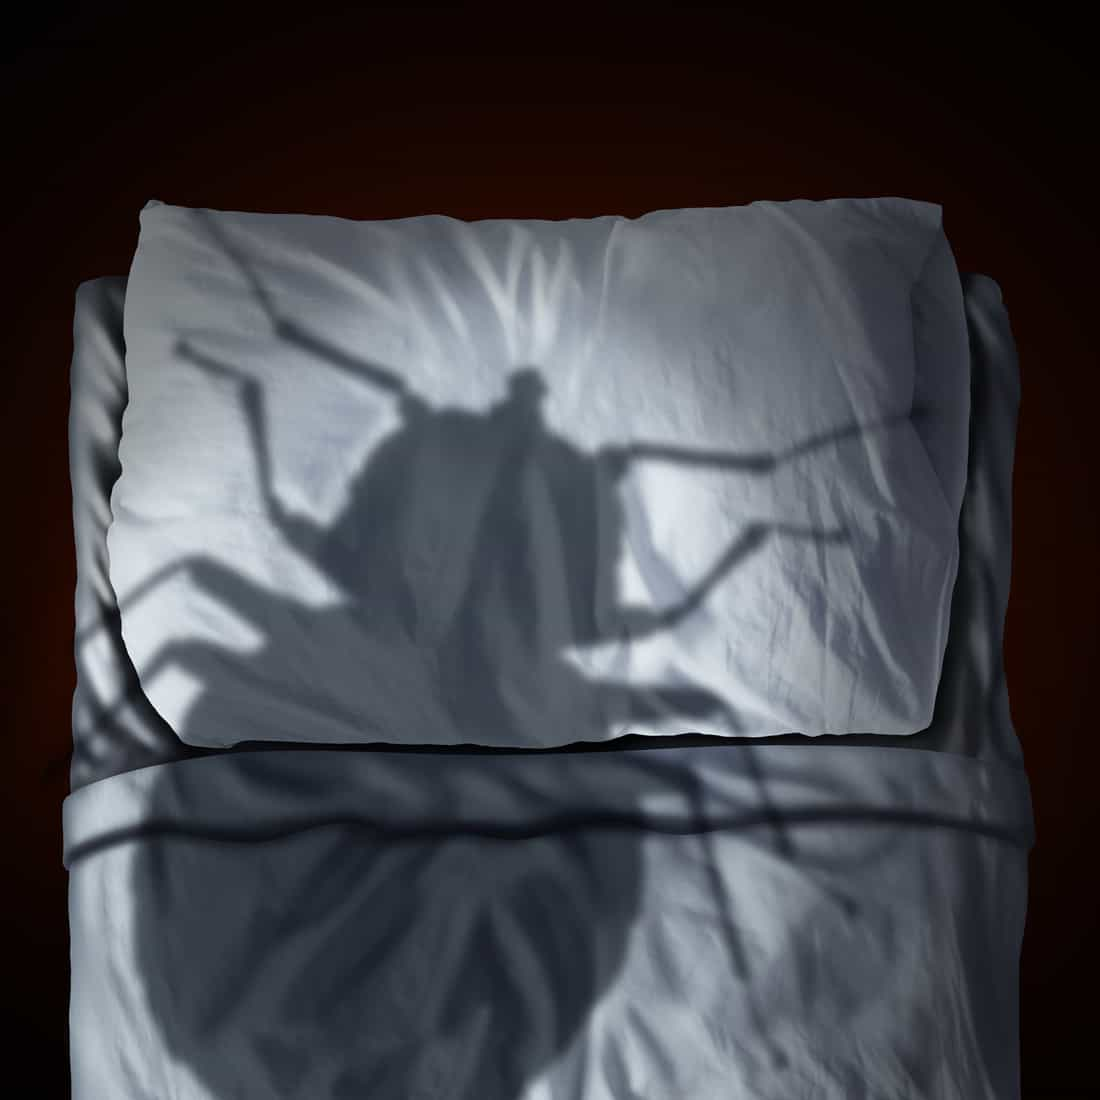 Bed bug fear or bedbug worry concept as a cast shadow of a a parasitic insect pest resting on a pillow and sheets as a symbol and metaphor